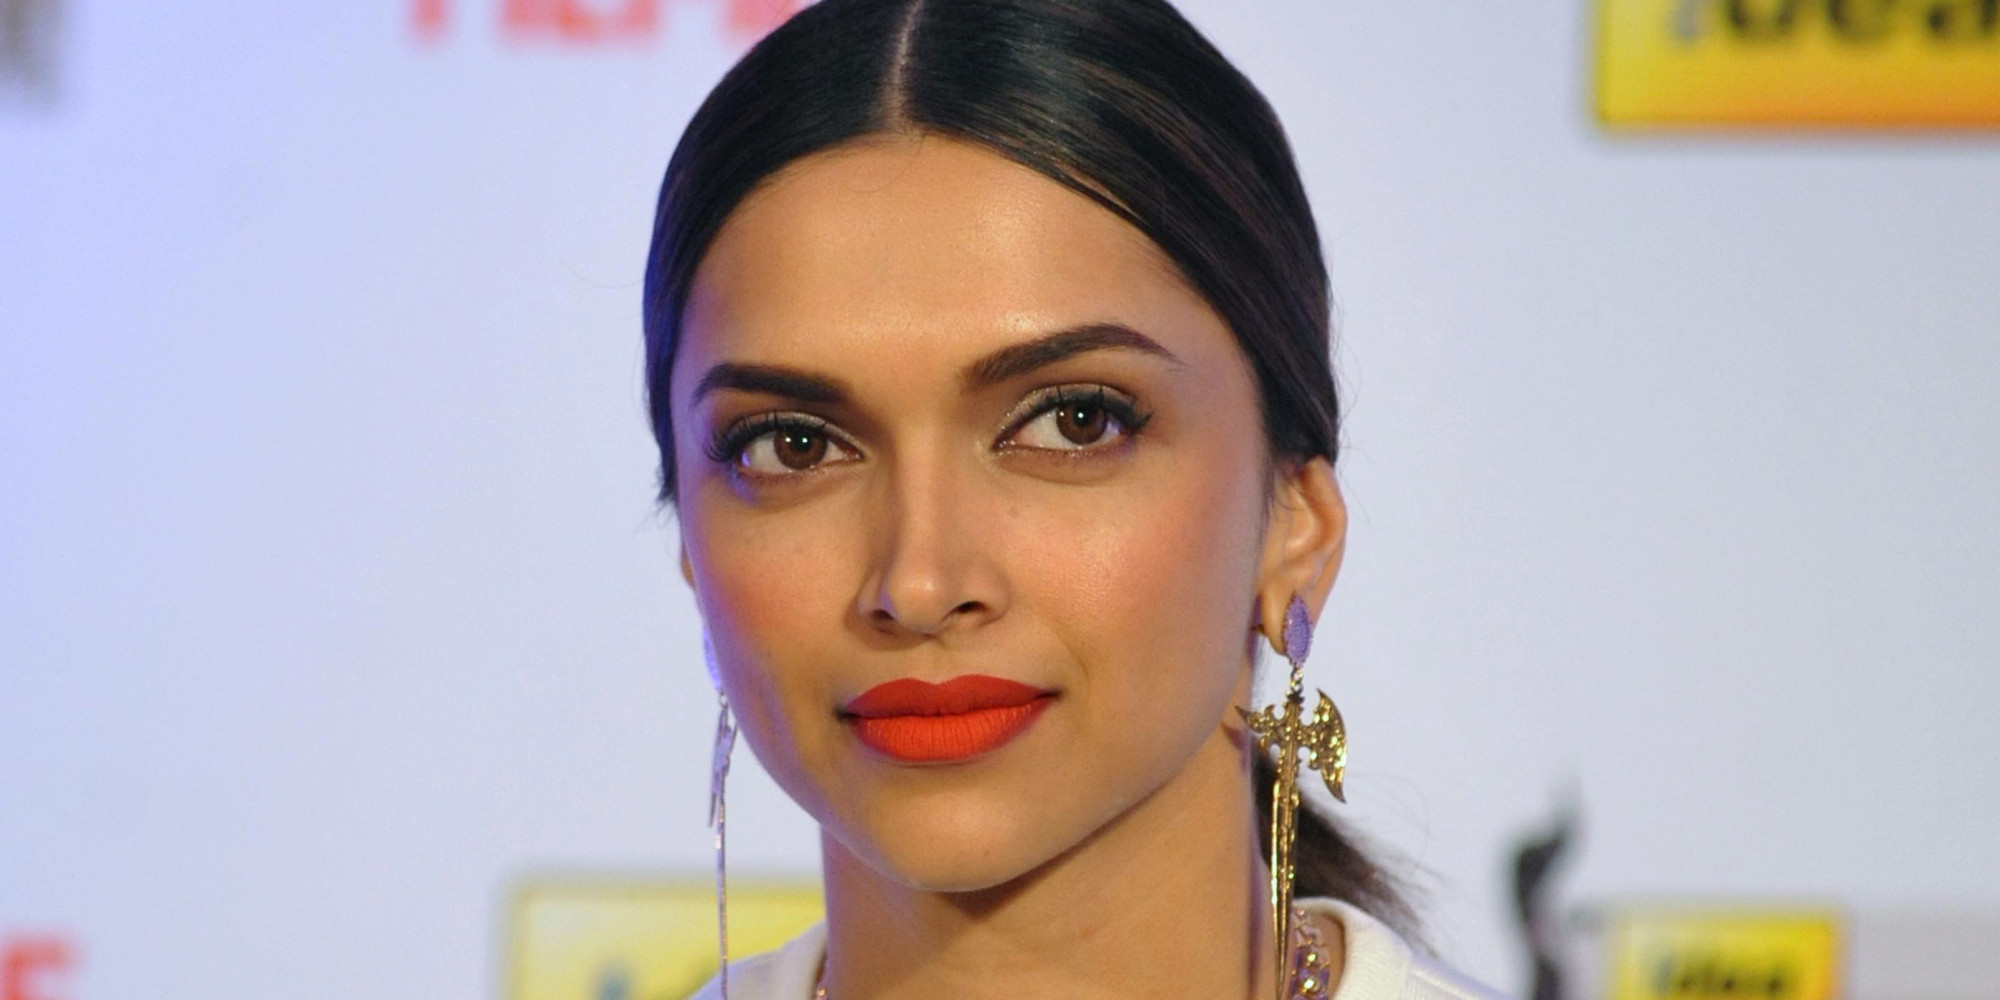 Times Of India Brand Deepika Padukone A Hypocrite For Fighting ...